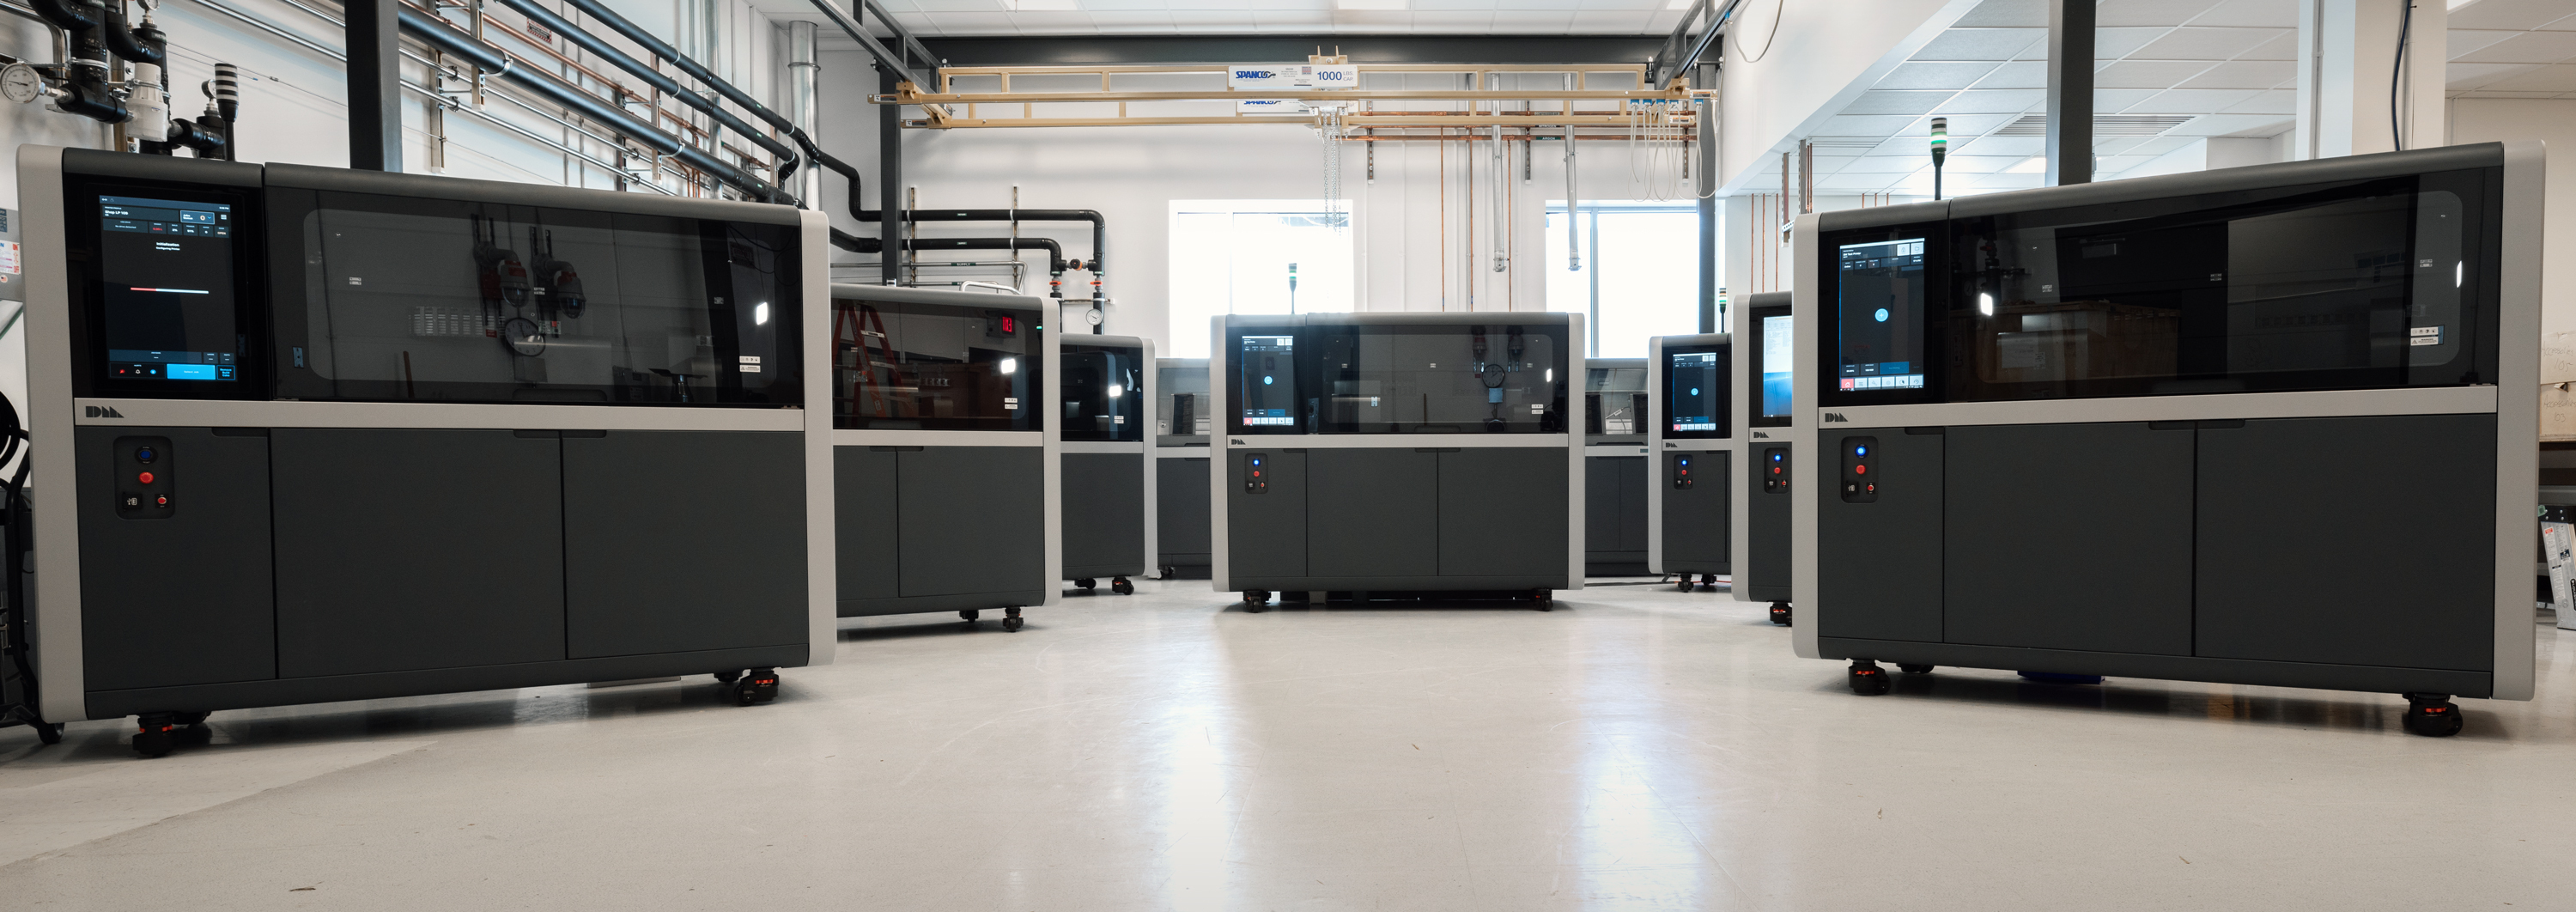 The Shop System can reach speeds of up to 800 cc/hour at 75-micron layer thickness to produce batches of hundreds of printed parts in just five hours. Image via Desktop Metal.